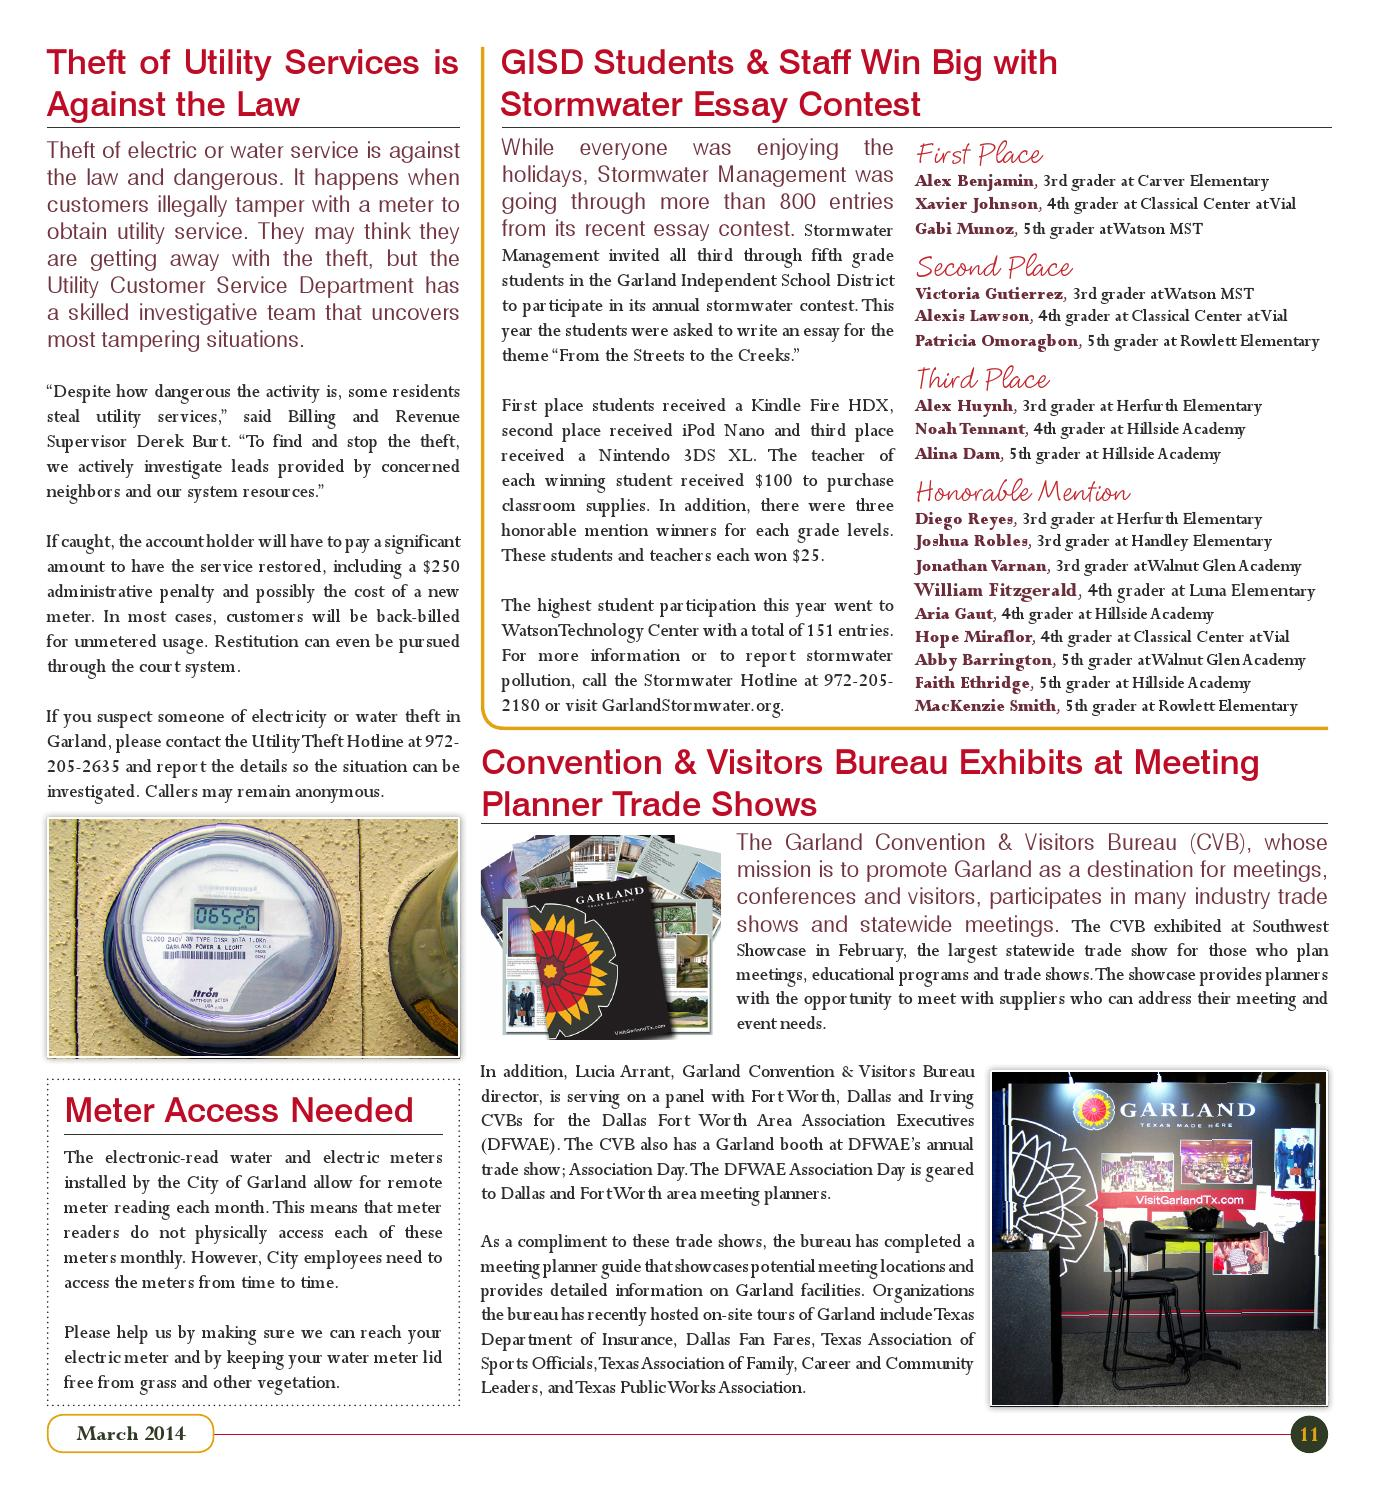 Garland City Press (March 2014) by City of Garland, Texas